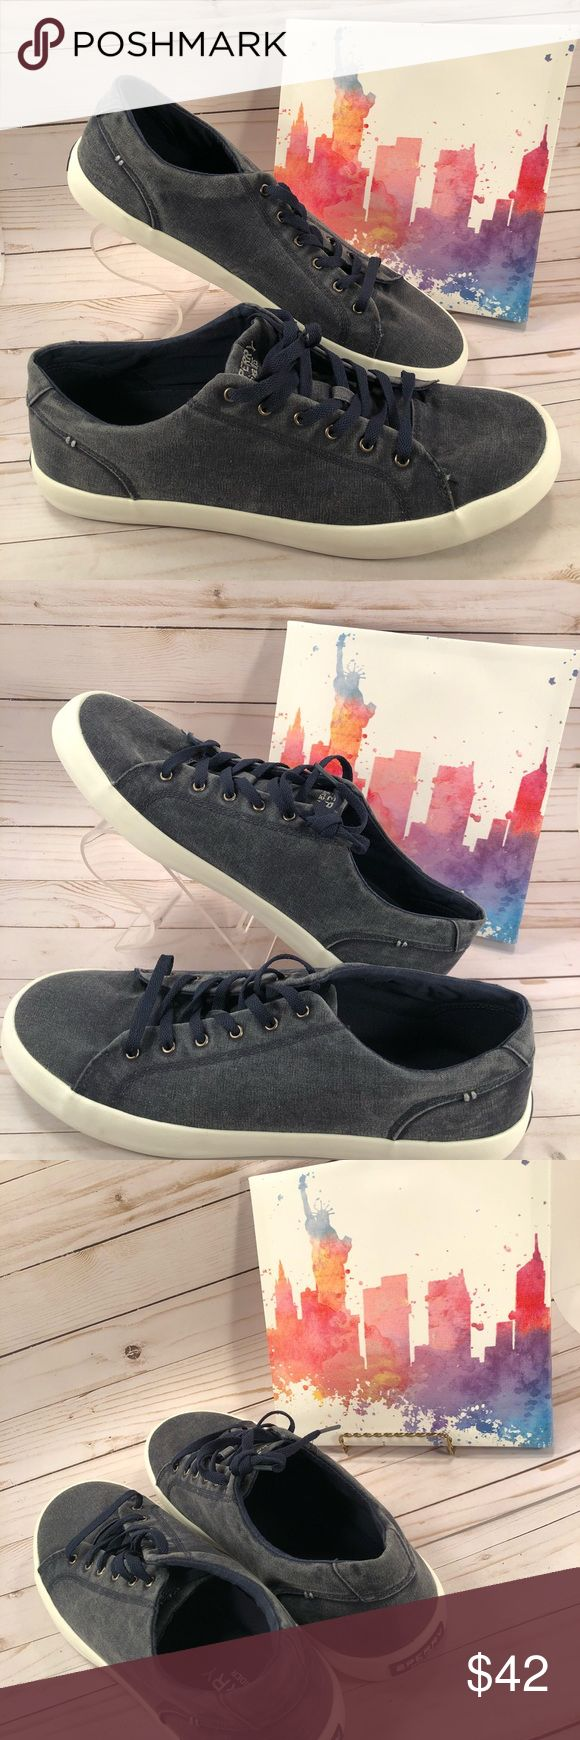 Sperry Top Siders Men's Casual Shoe Sneakers NEW New ! Tag, no box! MSRP $50 Sperry Top-Sider Shoes Sneakers